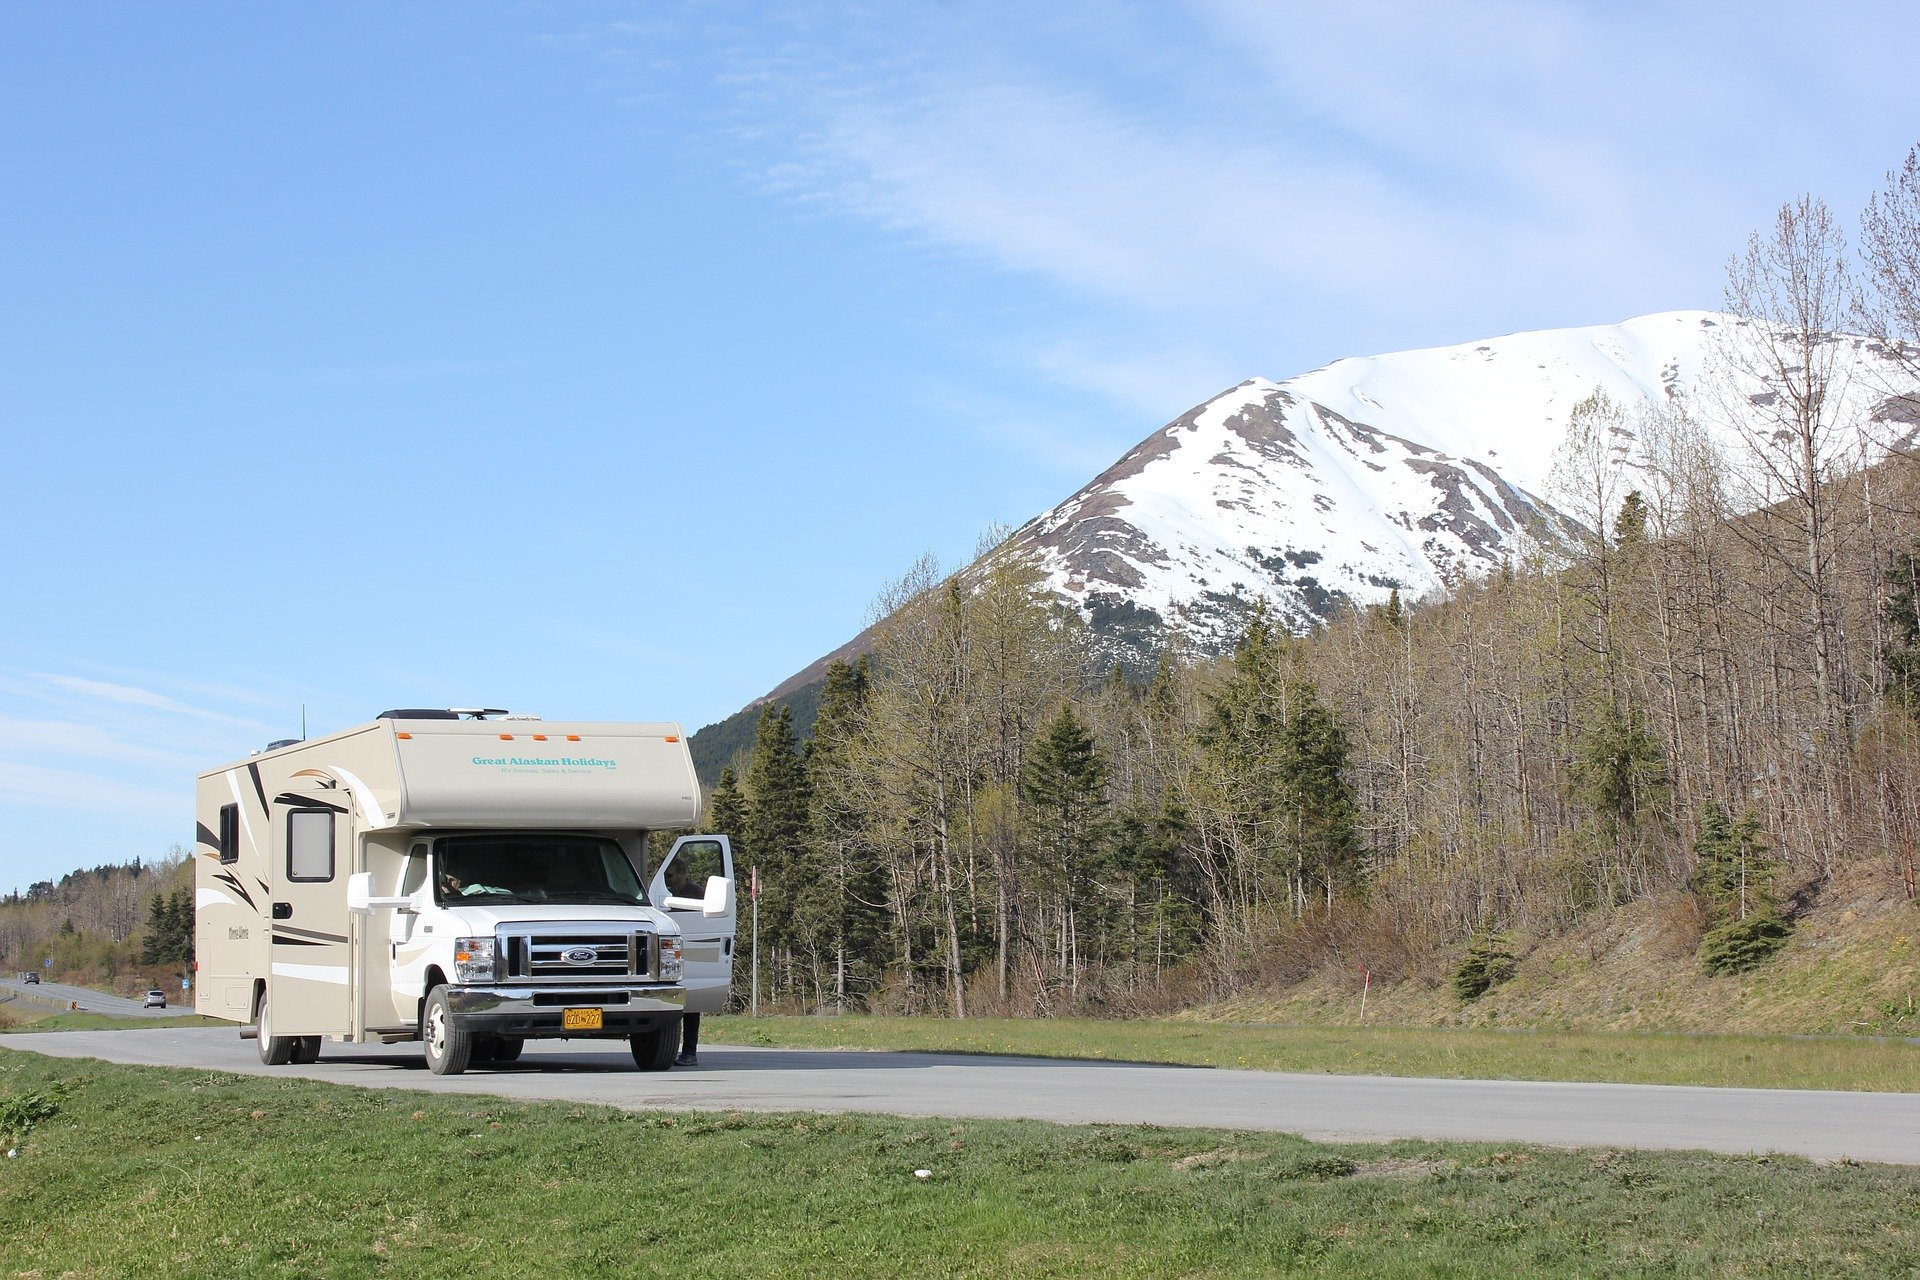 RV parked at the base of a snowy mountain, RV battery